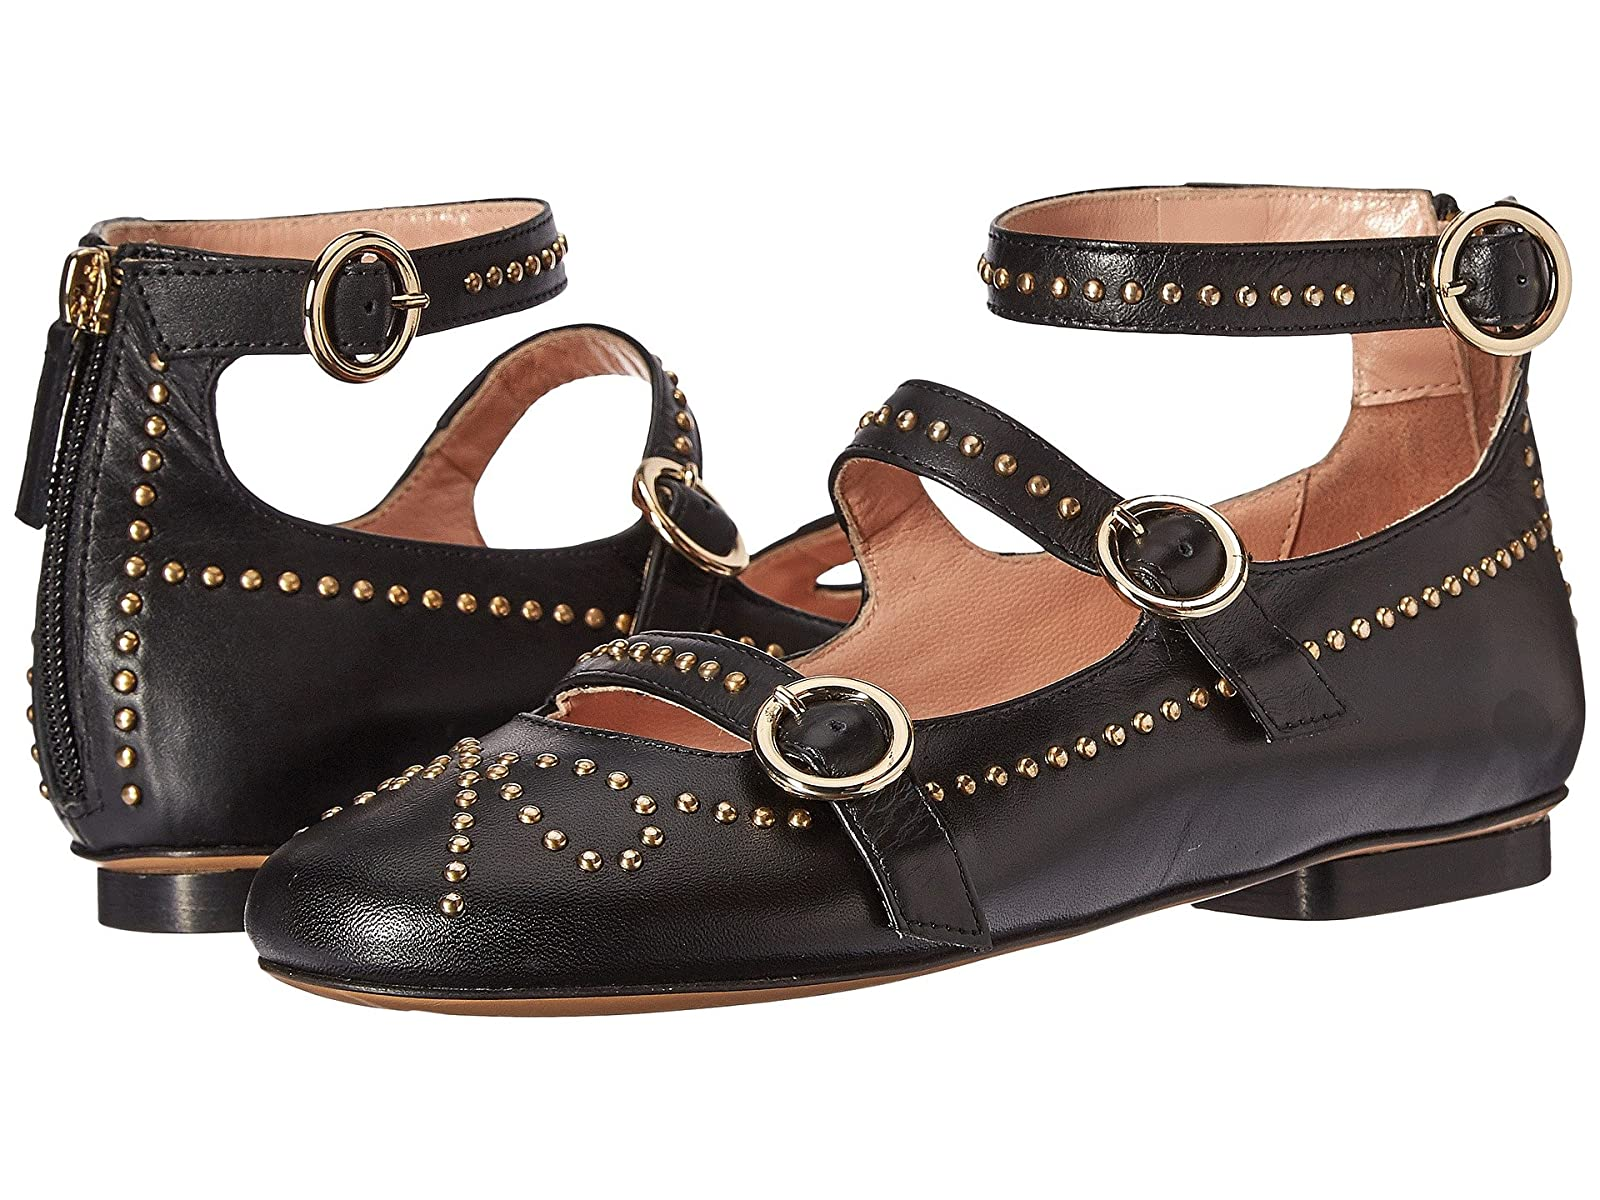 Boutique Moschino Studded Strappy FlatCheap and distinctive eye-catching shoes